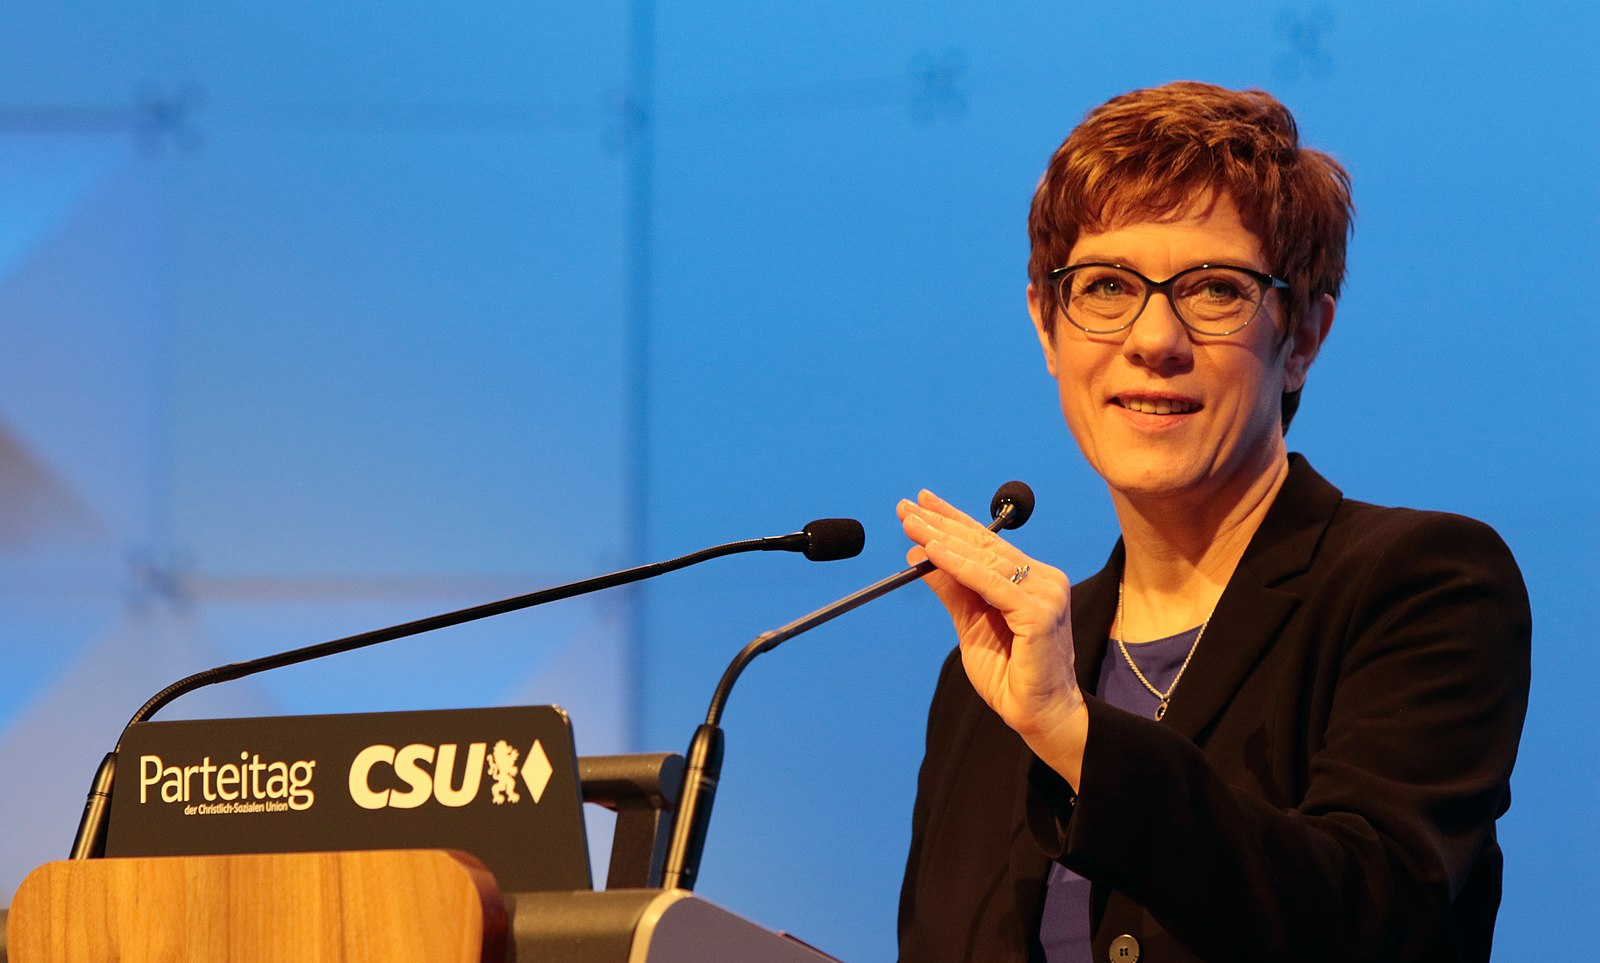 CDU leader Annegret Kramp-Karrenbauer speaks at CSU Party Conference, 2019 [Wikimedia Commons].